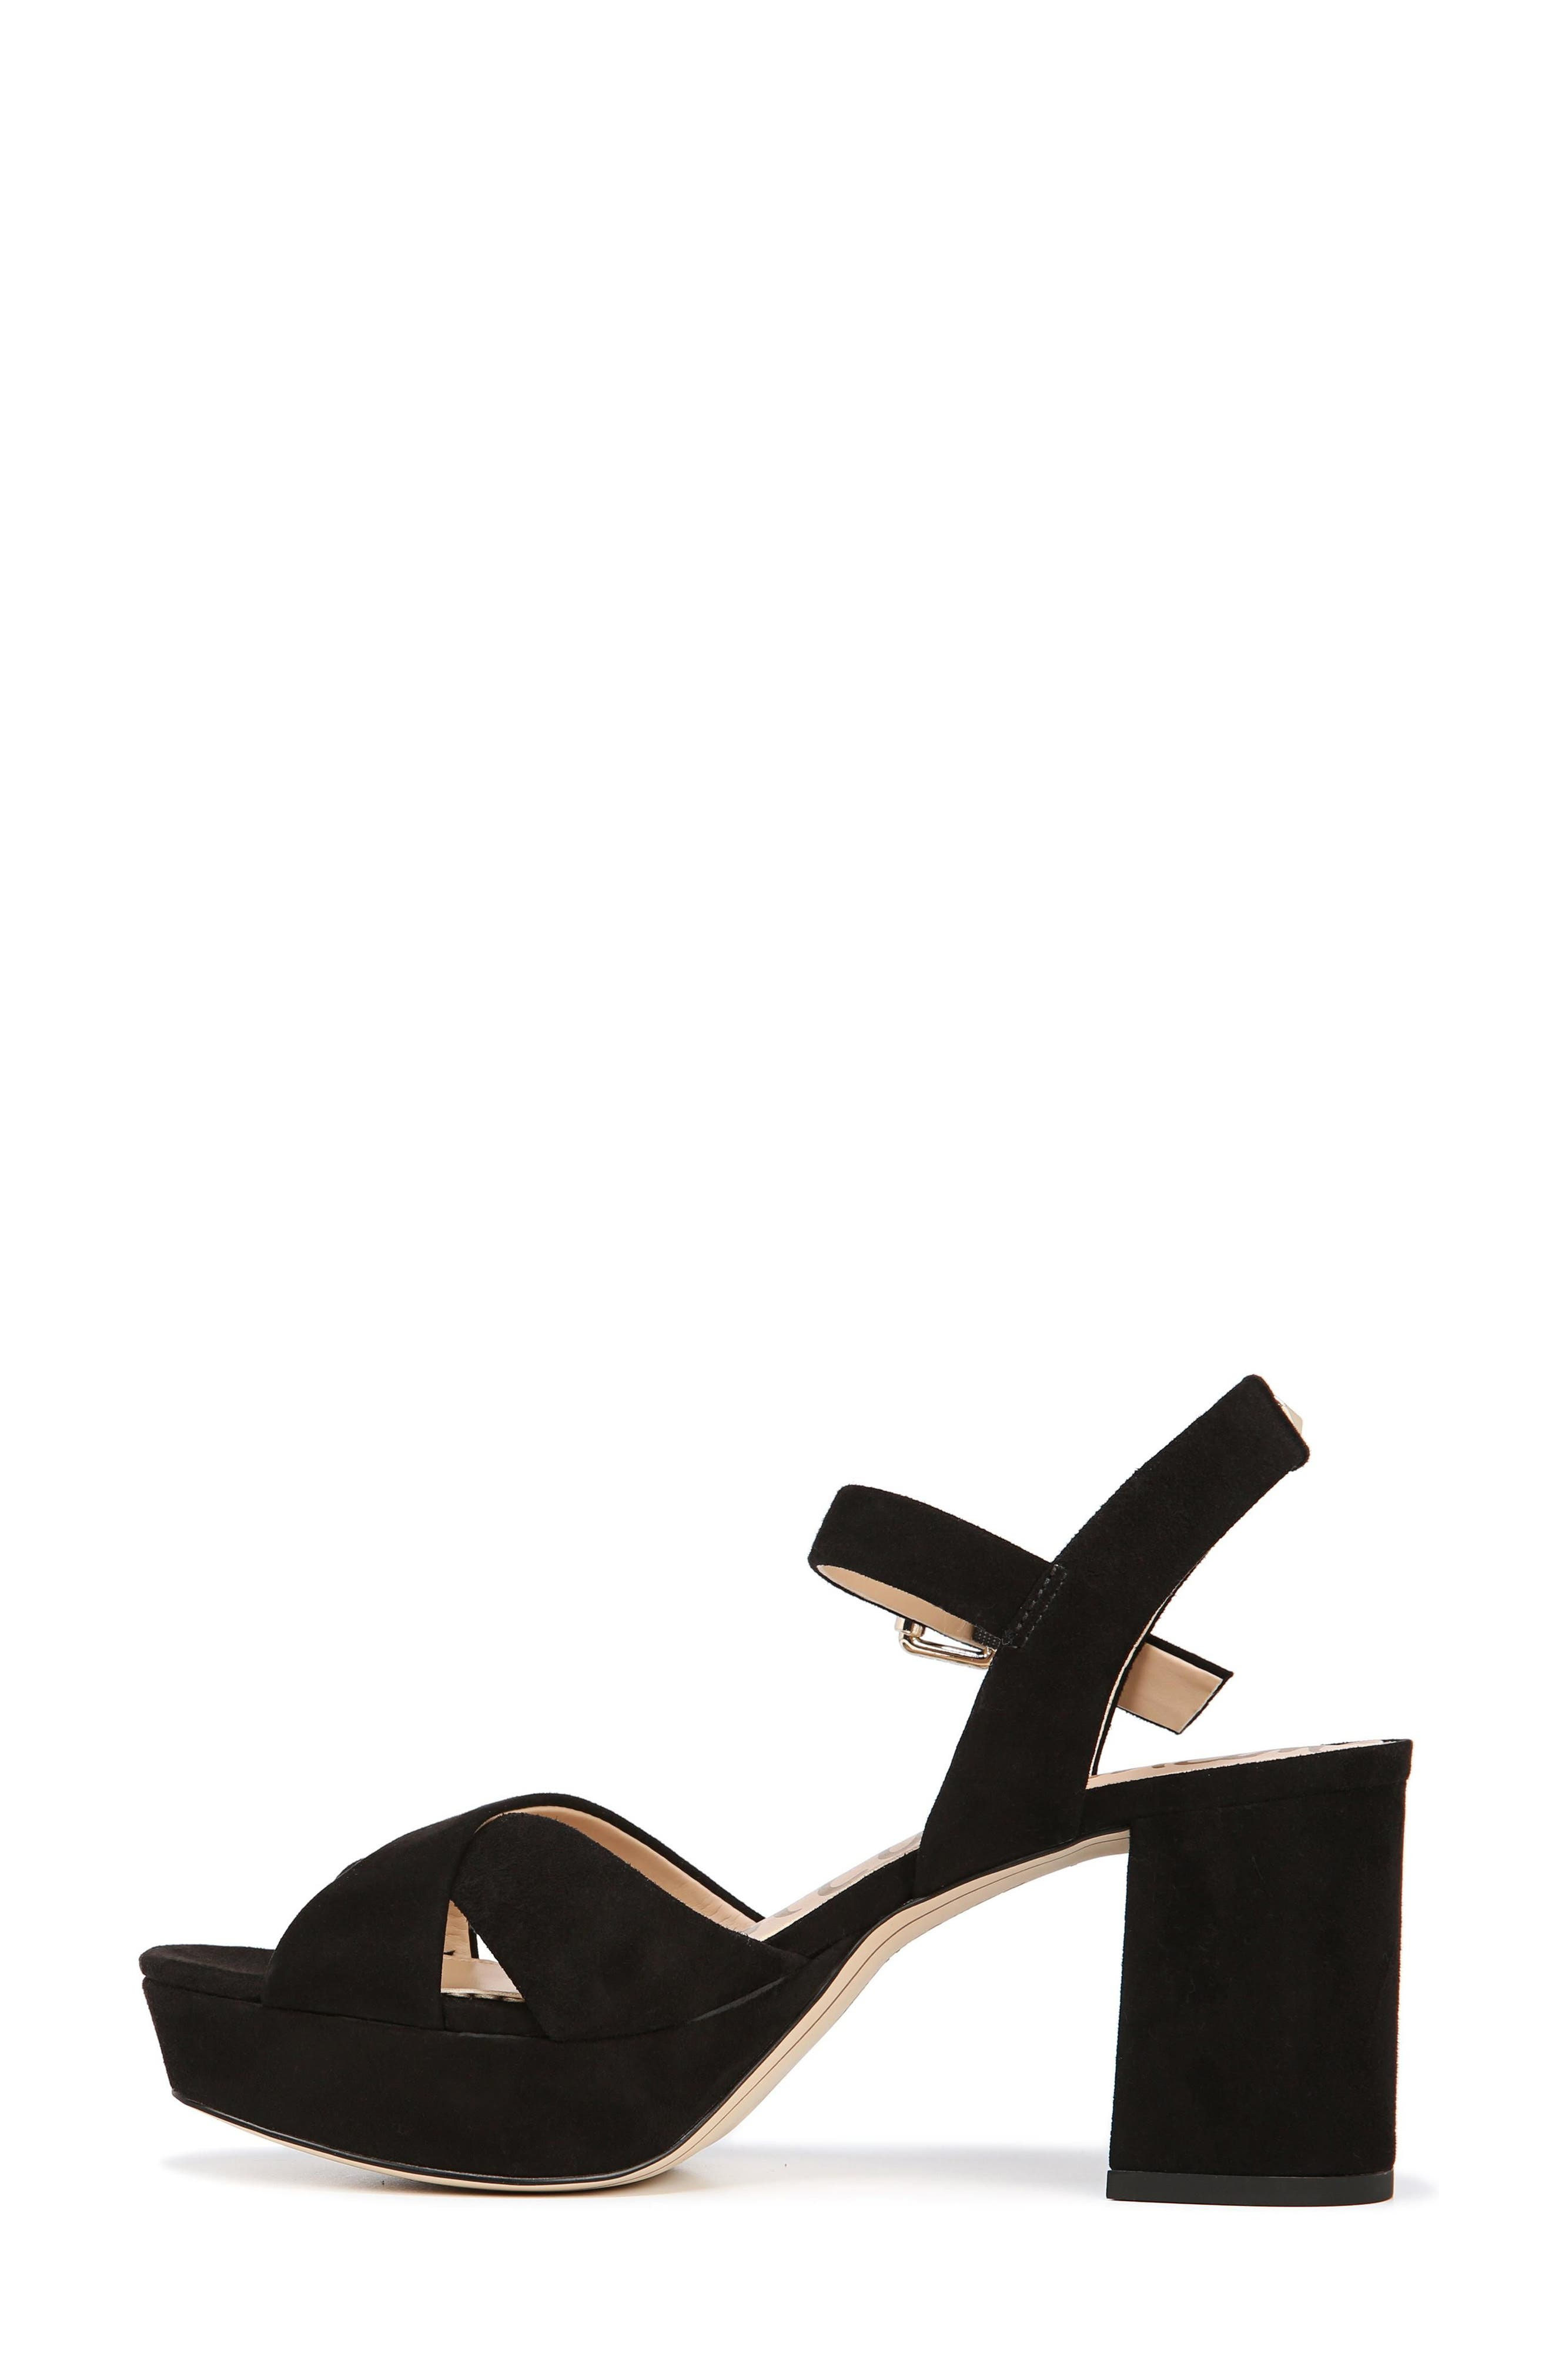 Jolene Platform Sandal,                             Alternate thumbnail 9, color,                             BLACK SUEDE